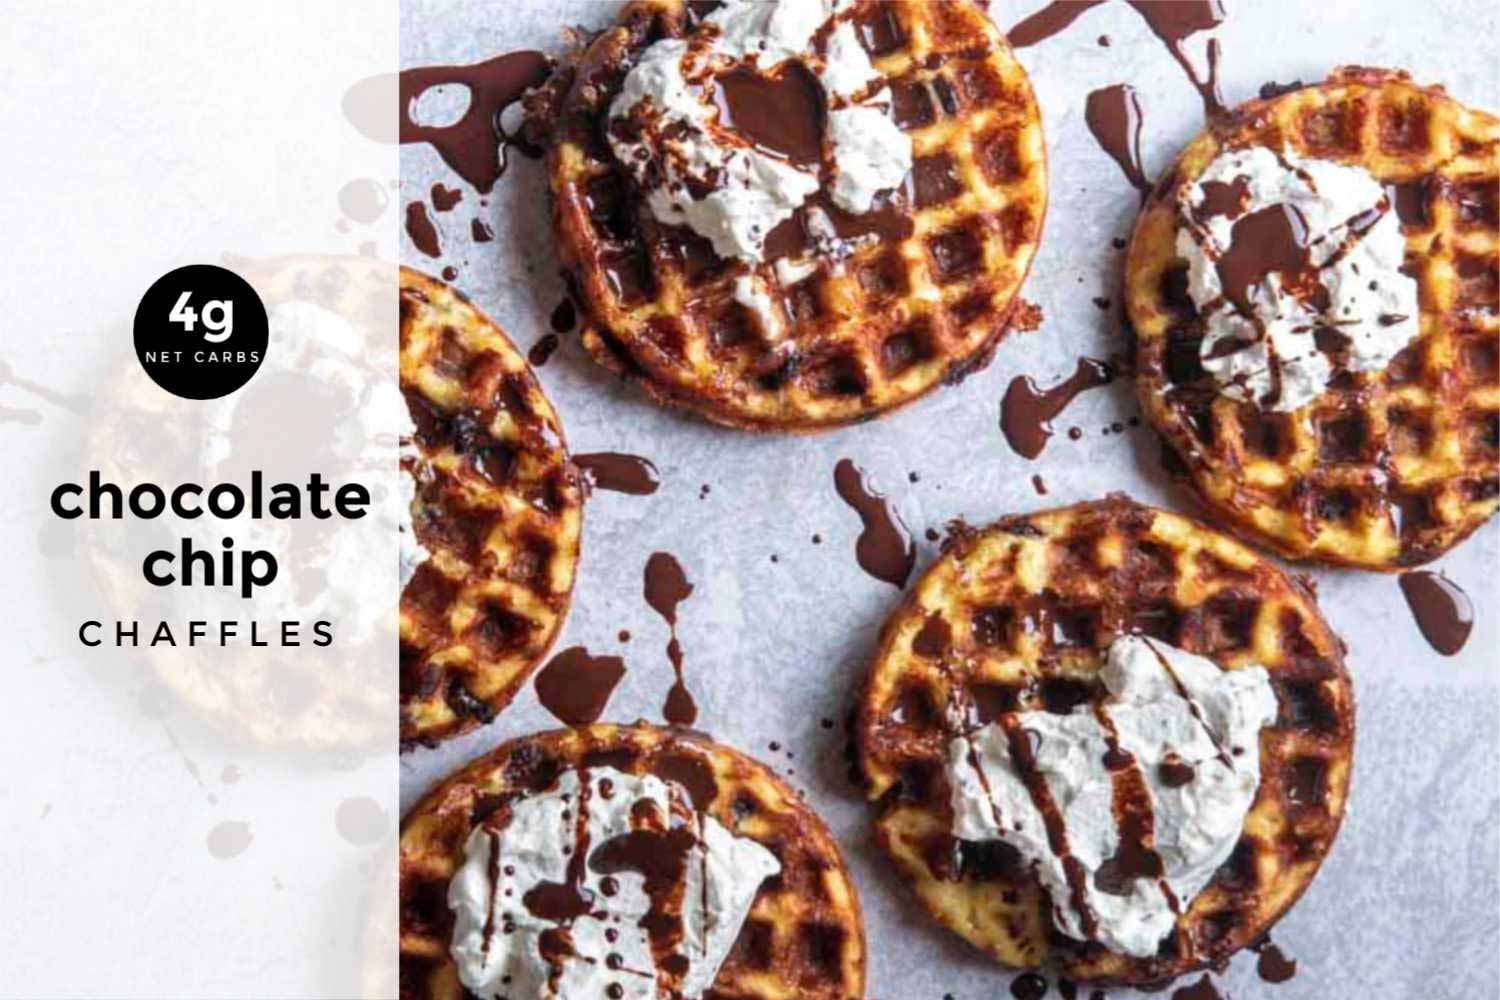 A graphic of chocolate chip chaffles